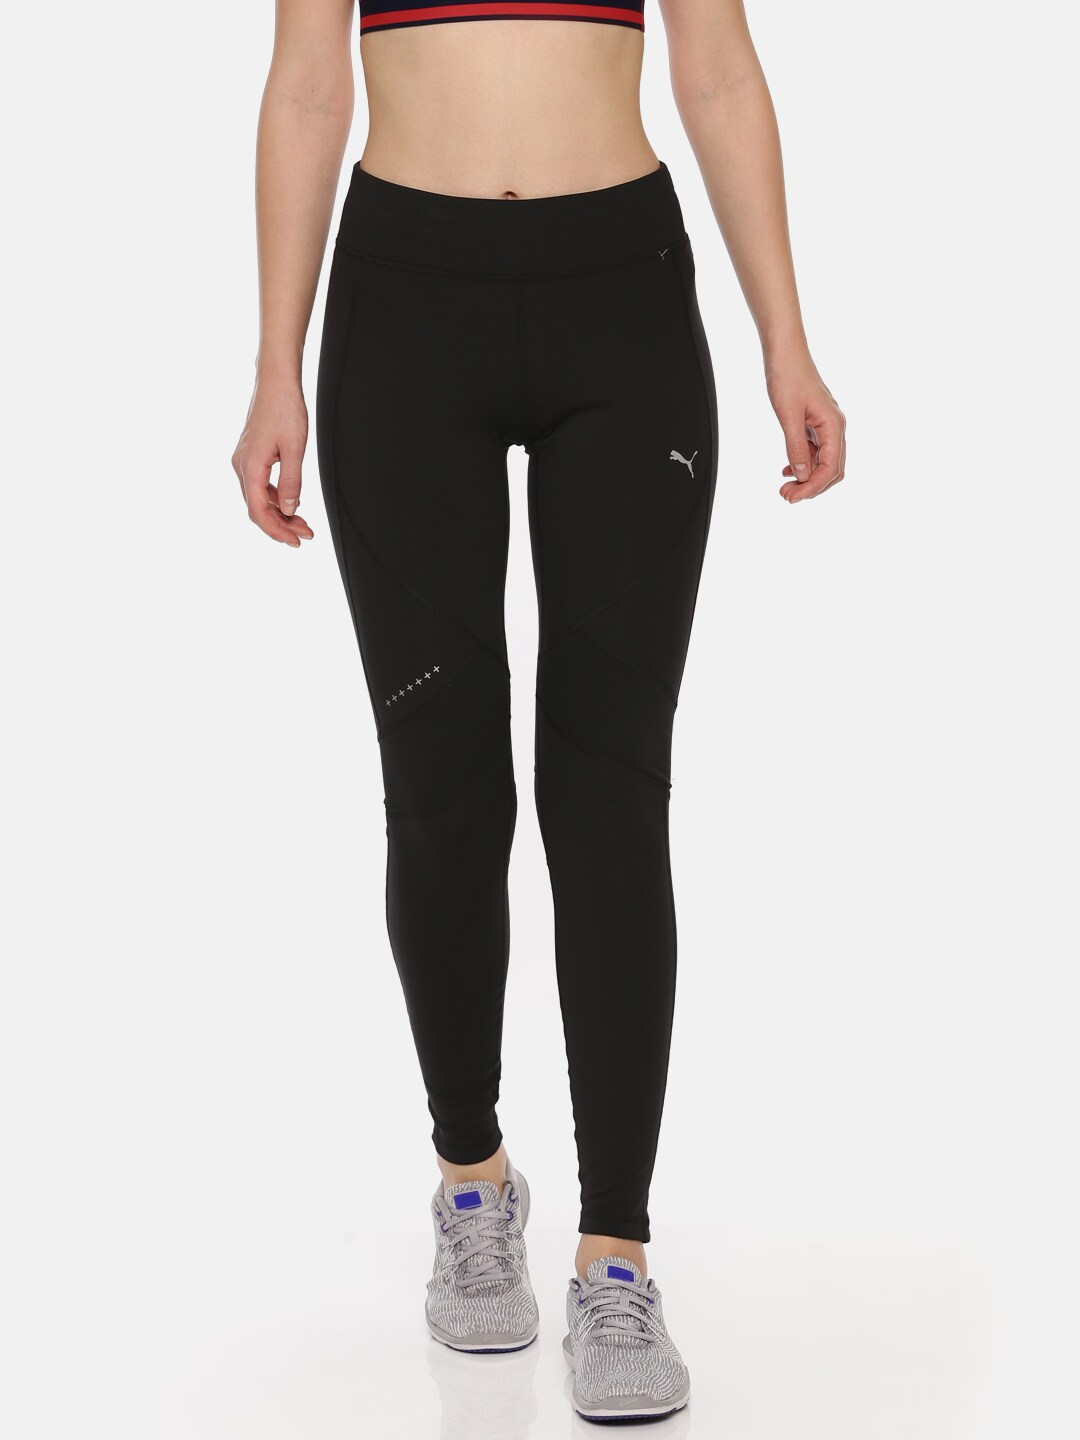 Dry Cell Run Solid Black Long Puma Tights Jl1cTFK3